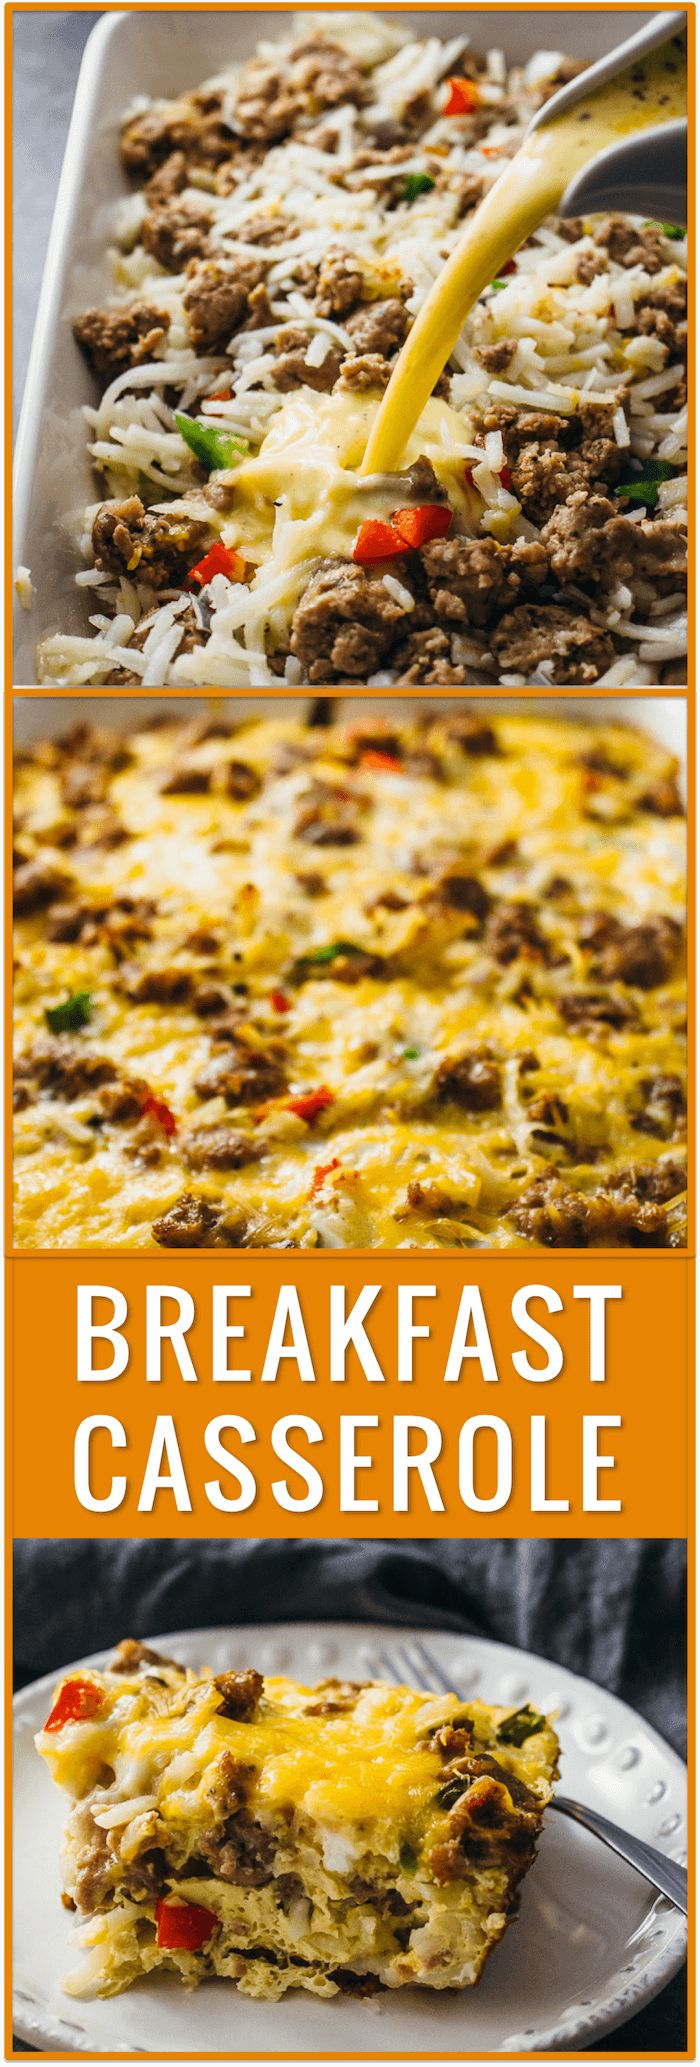 easy breakfast casserole, hash browns, overnight breakfast casserole, best breakfast casserole, sausage, bacon, biscuits, crescent rolls, healthy, brunch, cheddar cheese, eggs, milk, vegetables, recipe, idea via @savory_tooth